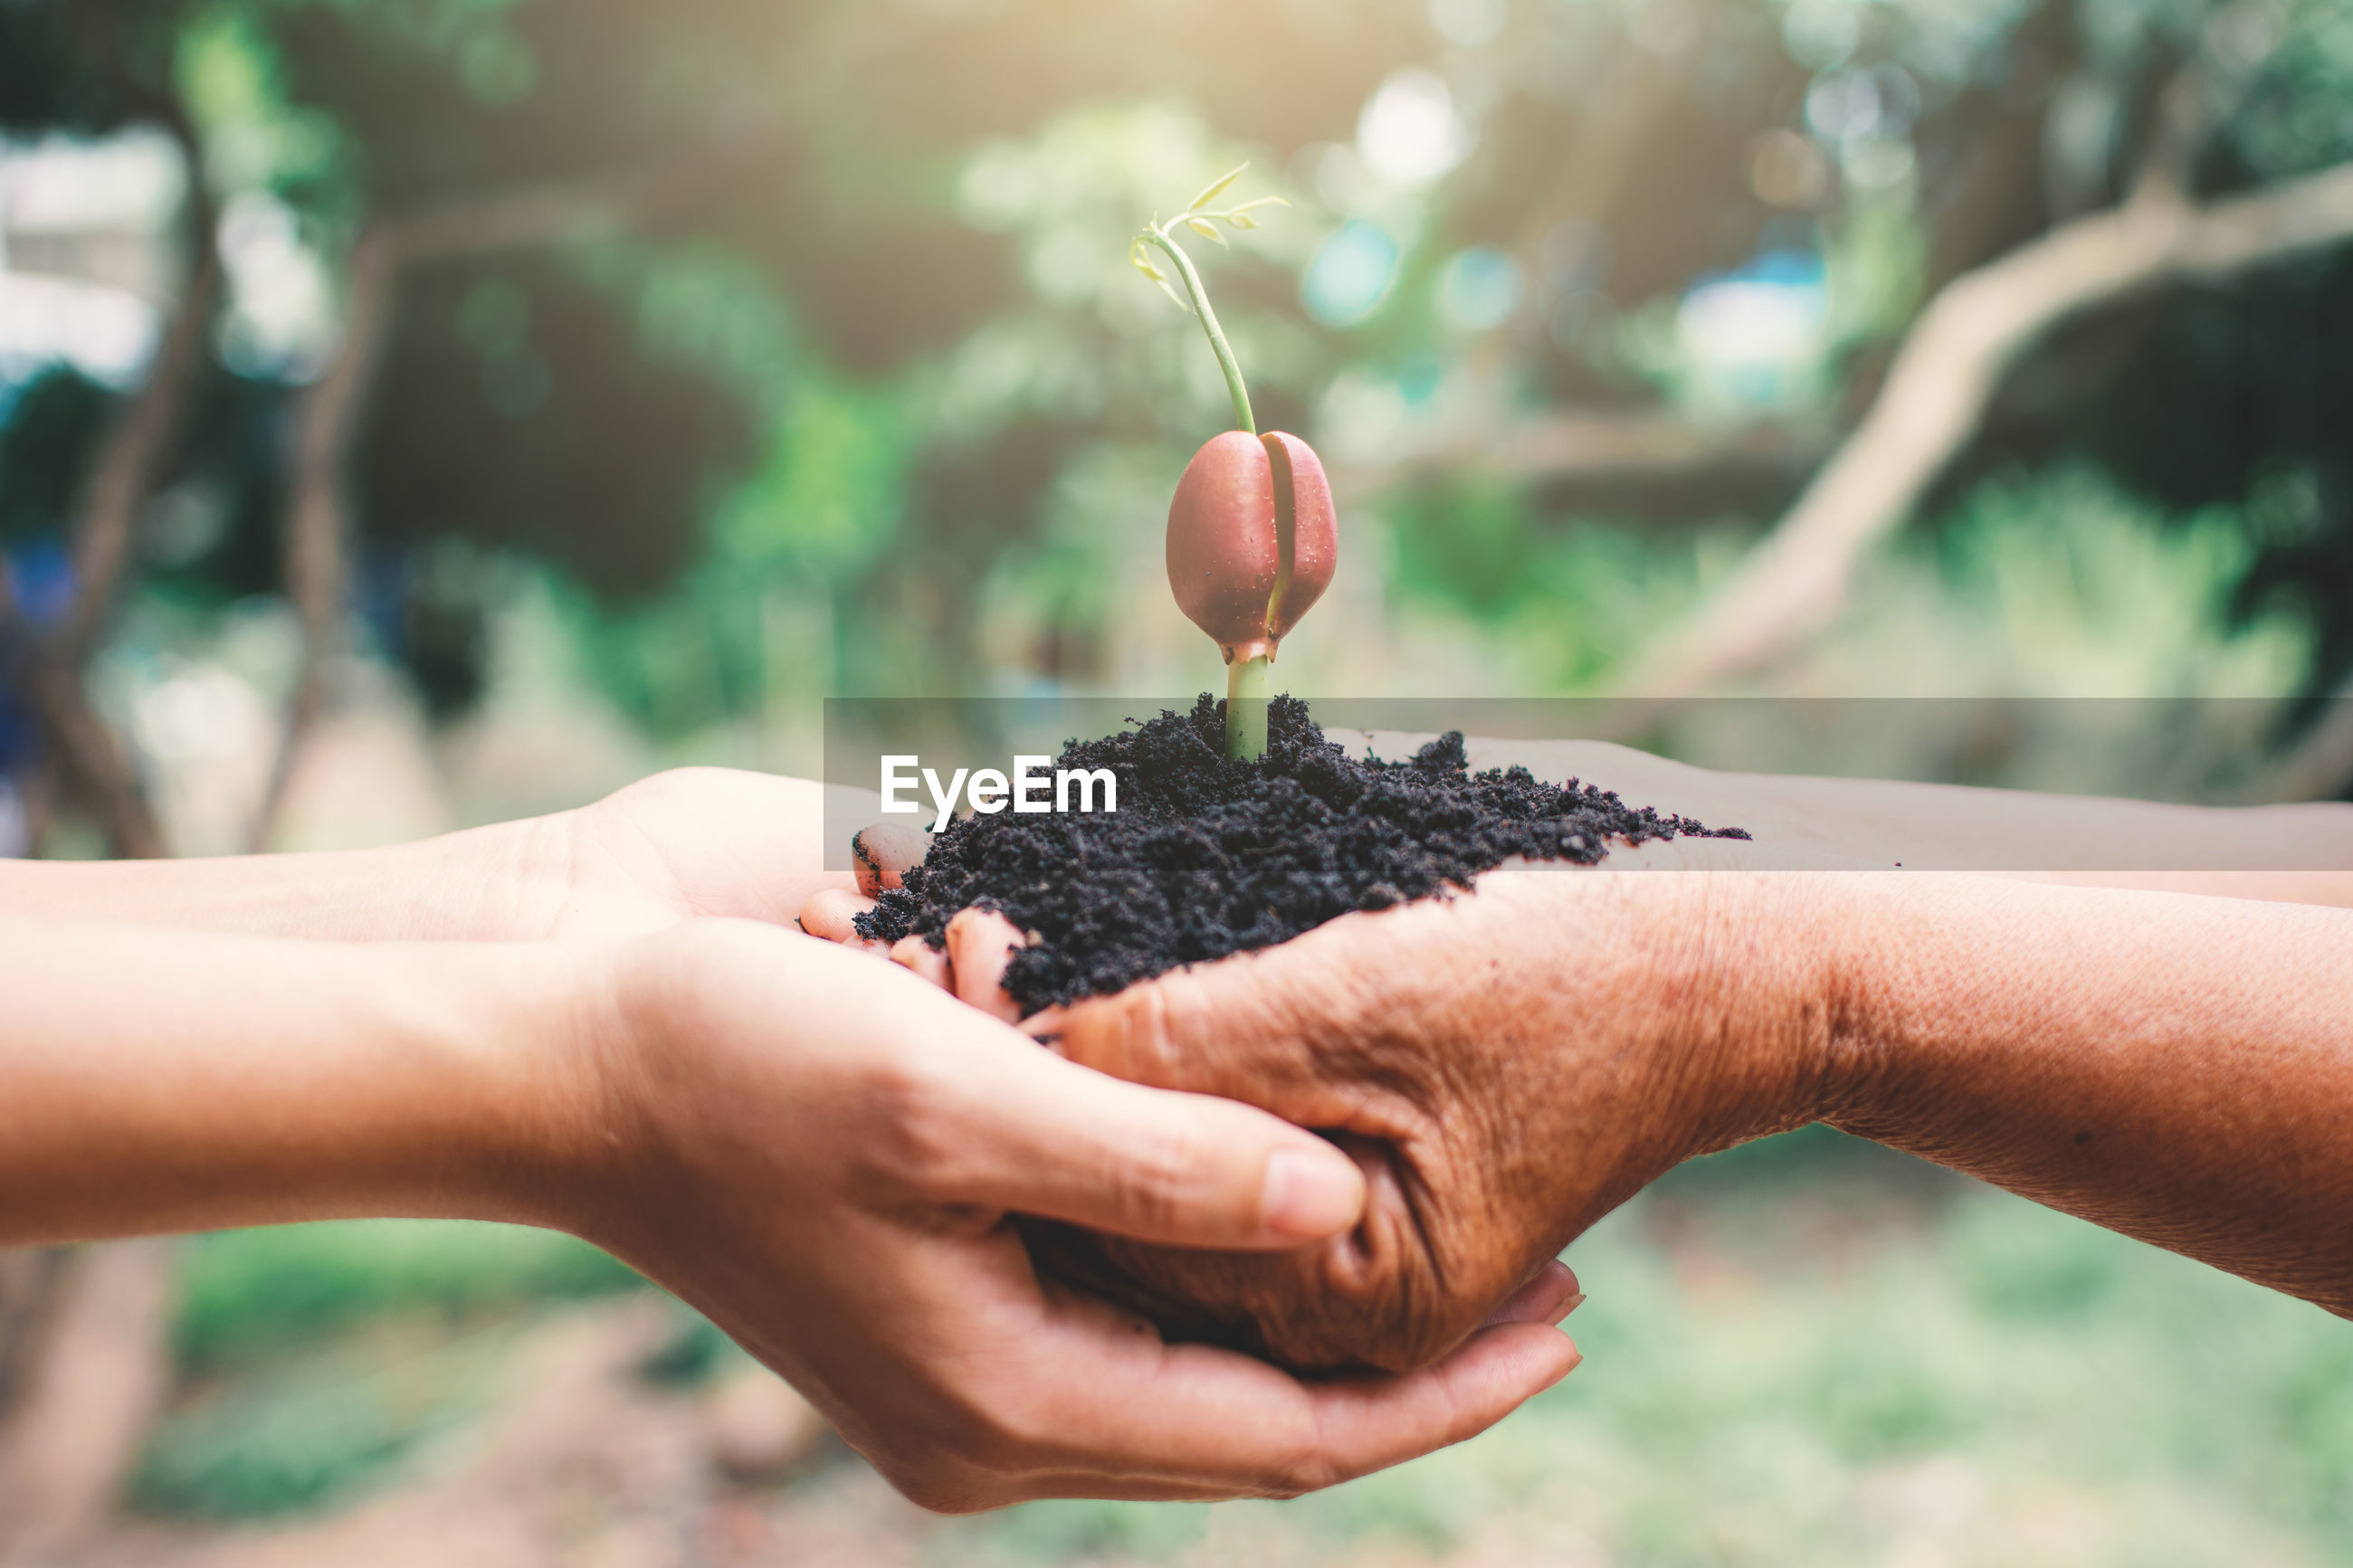 Cropped hands of people holding seedling